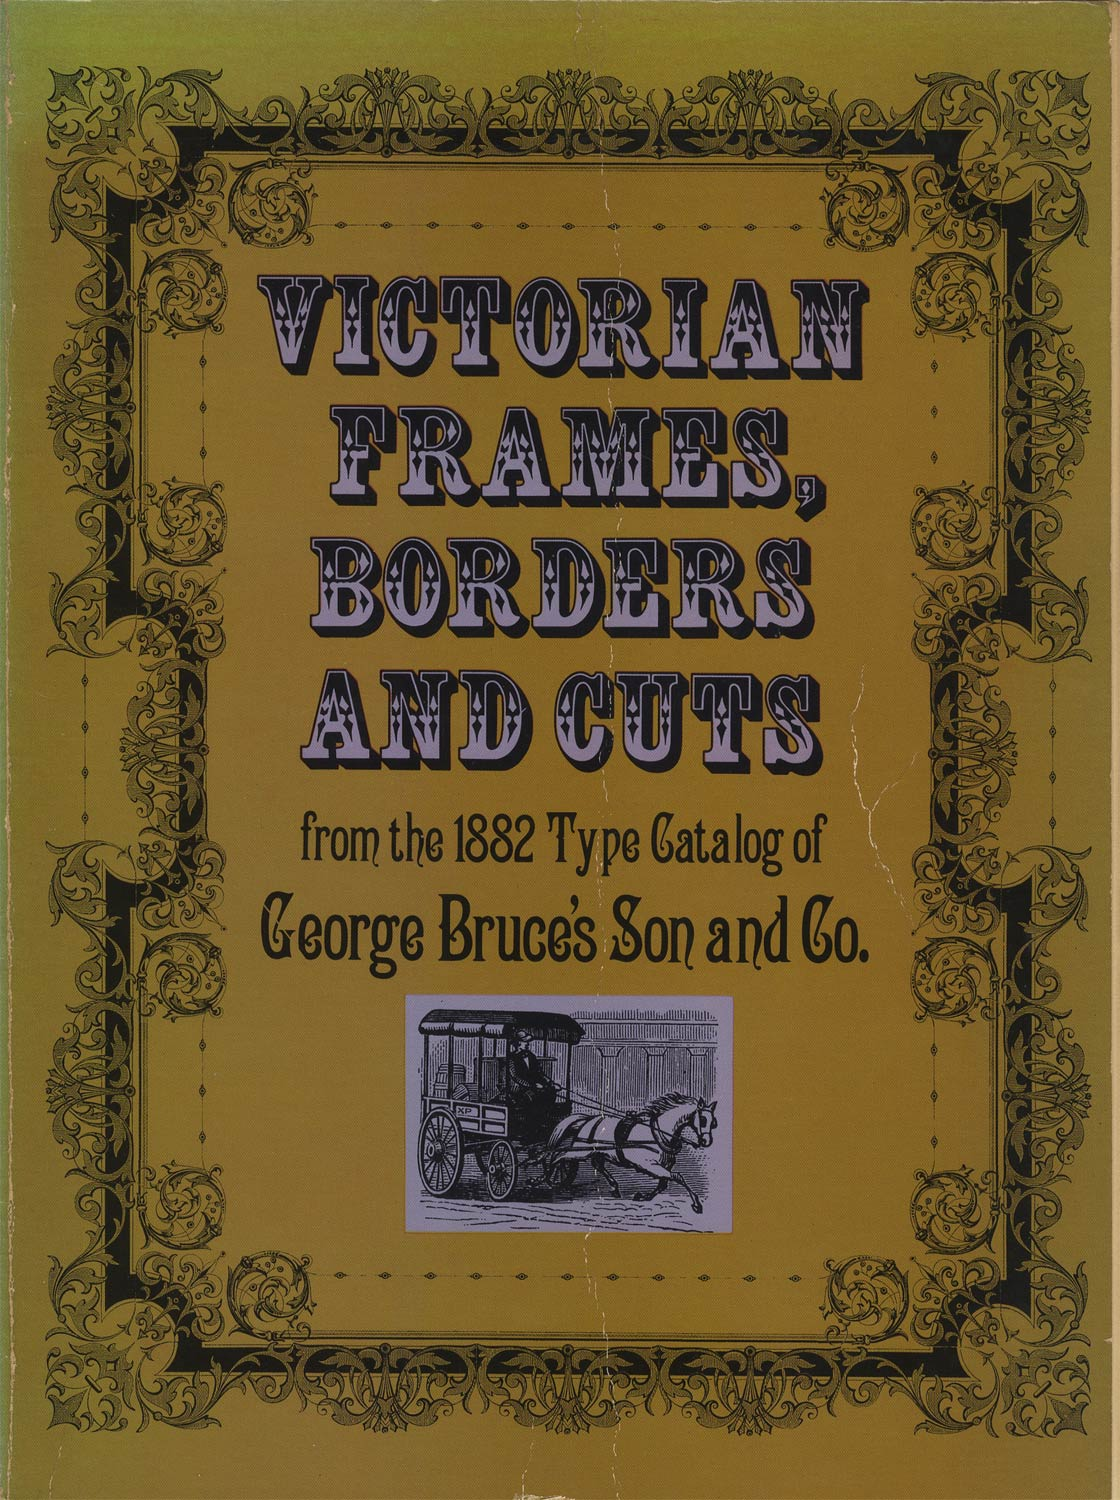 Victorian Frames、 Borders and Cuts from the 1882 Type Catalog of George Bruce's Son & Co.